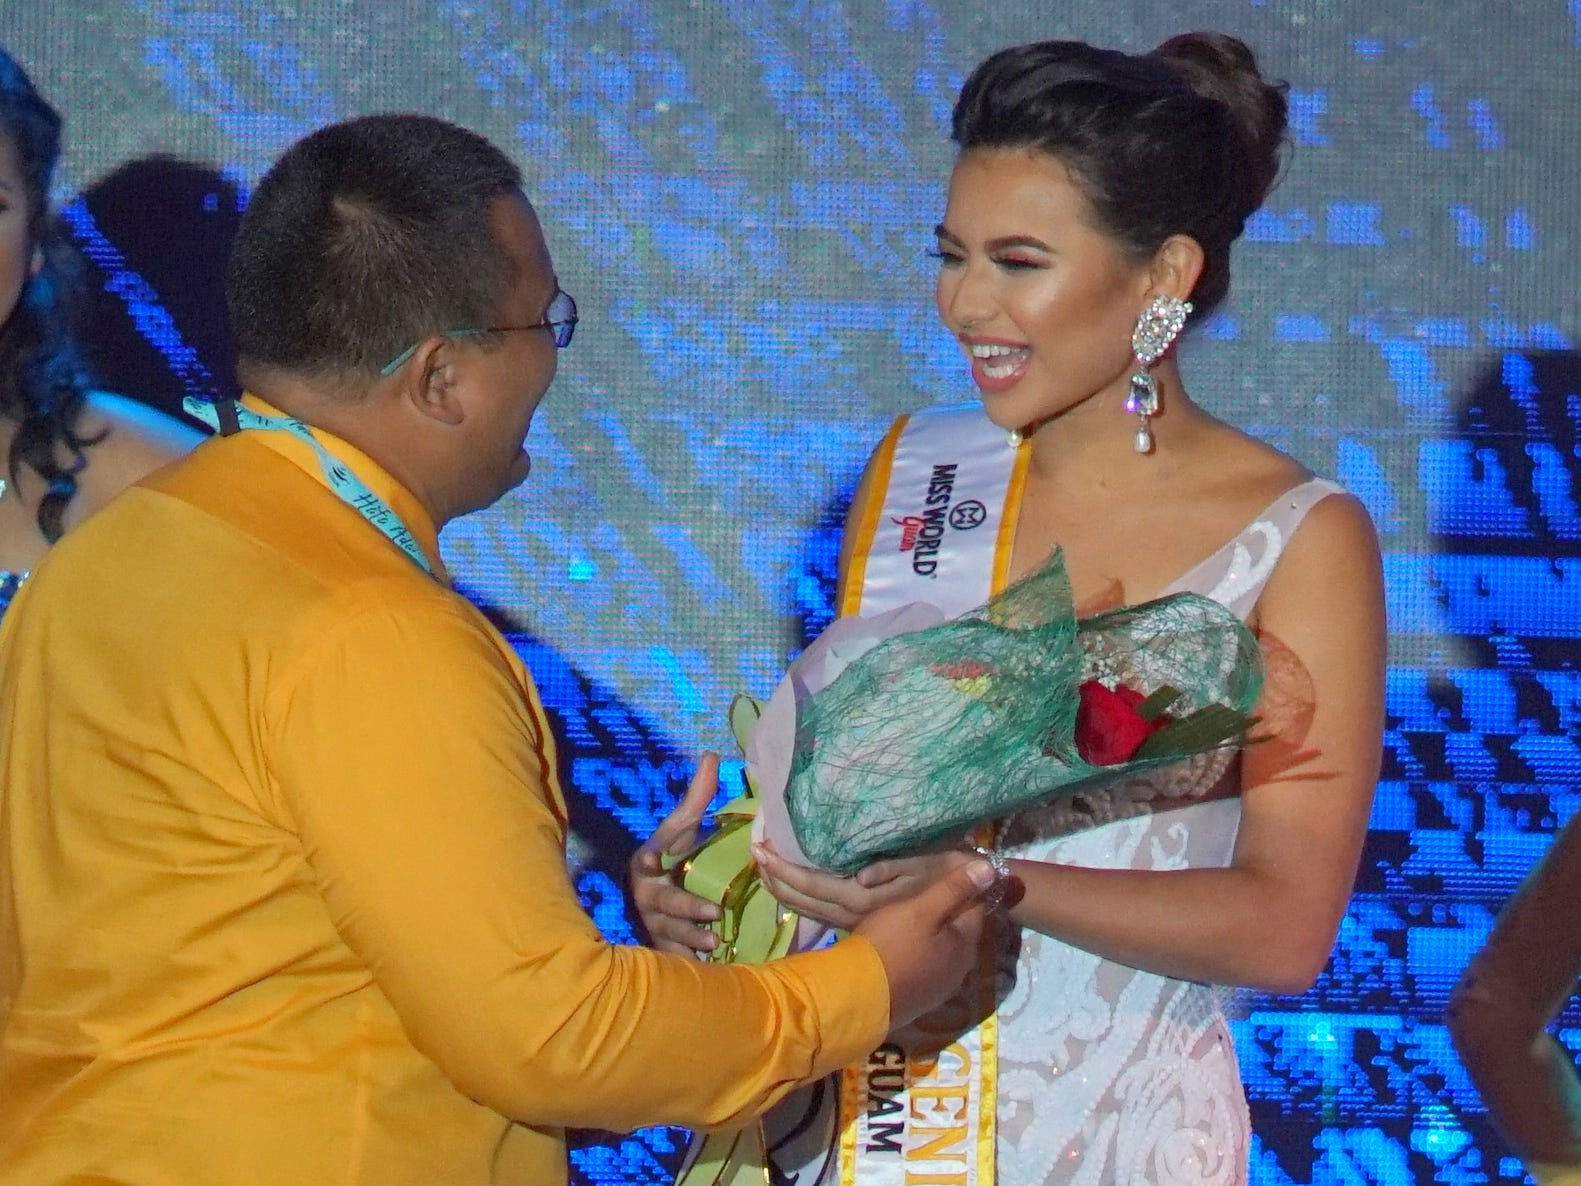 Photographer John Balbin presents flowers to Contestant #2, Gianna Camacho Sgambelluri. She won the Miss Photogenic award during the 2018 Miss World Guam pageant held at Sheraton Laguna Guam Resort.